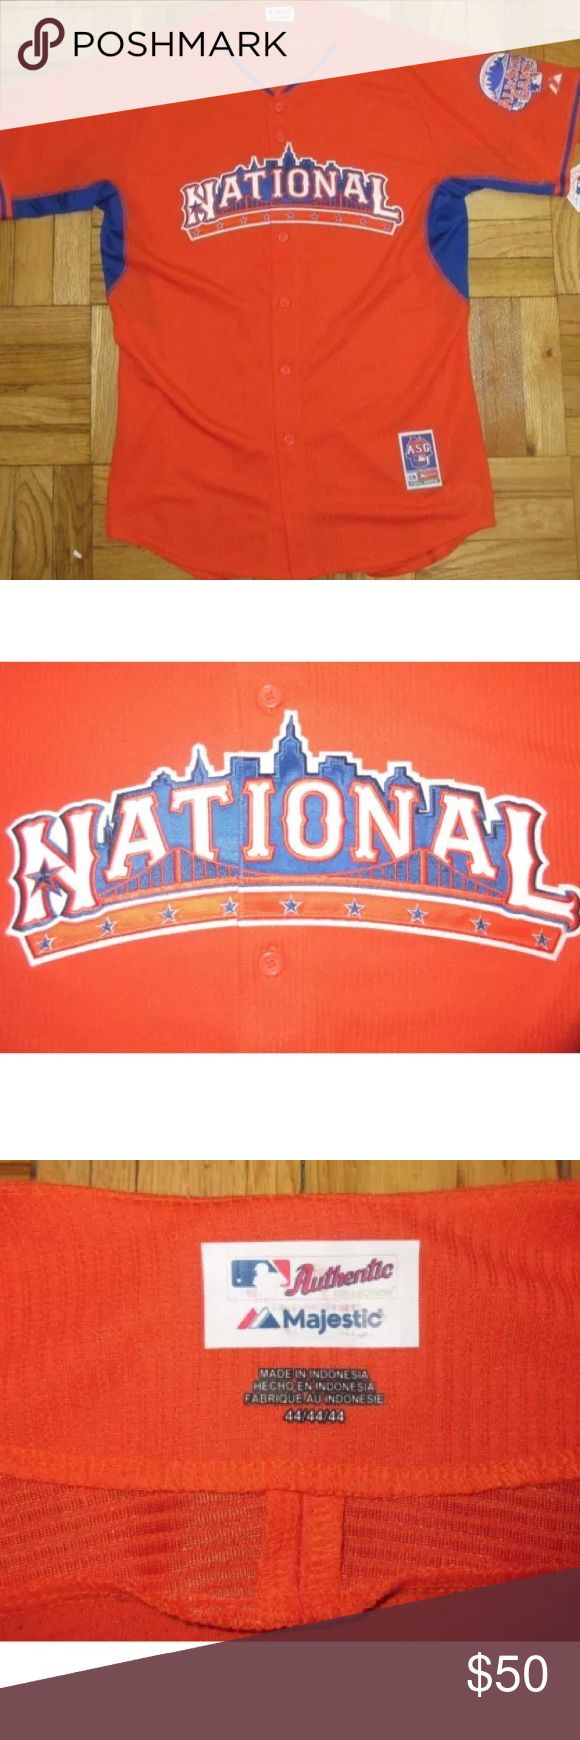 Majestic Official 2013 MLB All Star Game Jersey 2013 National League Jersey NWT Majestic Shirts